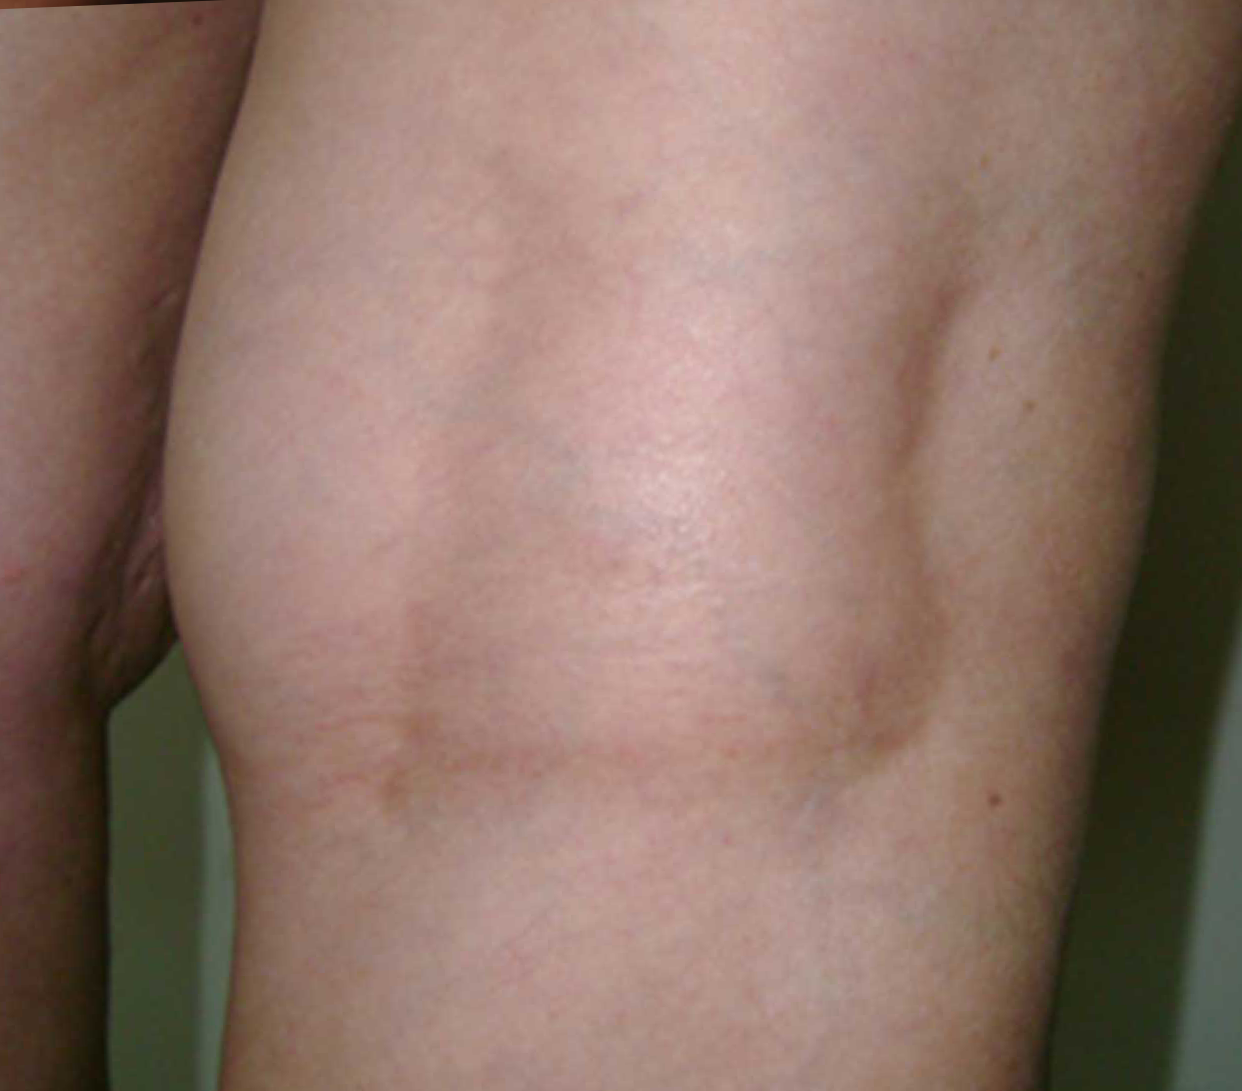 1-Vein-After-LongPulse